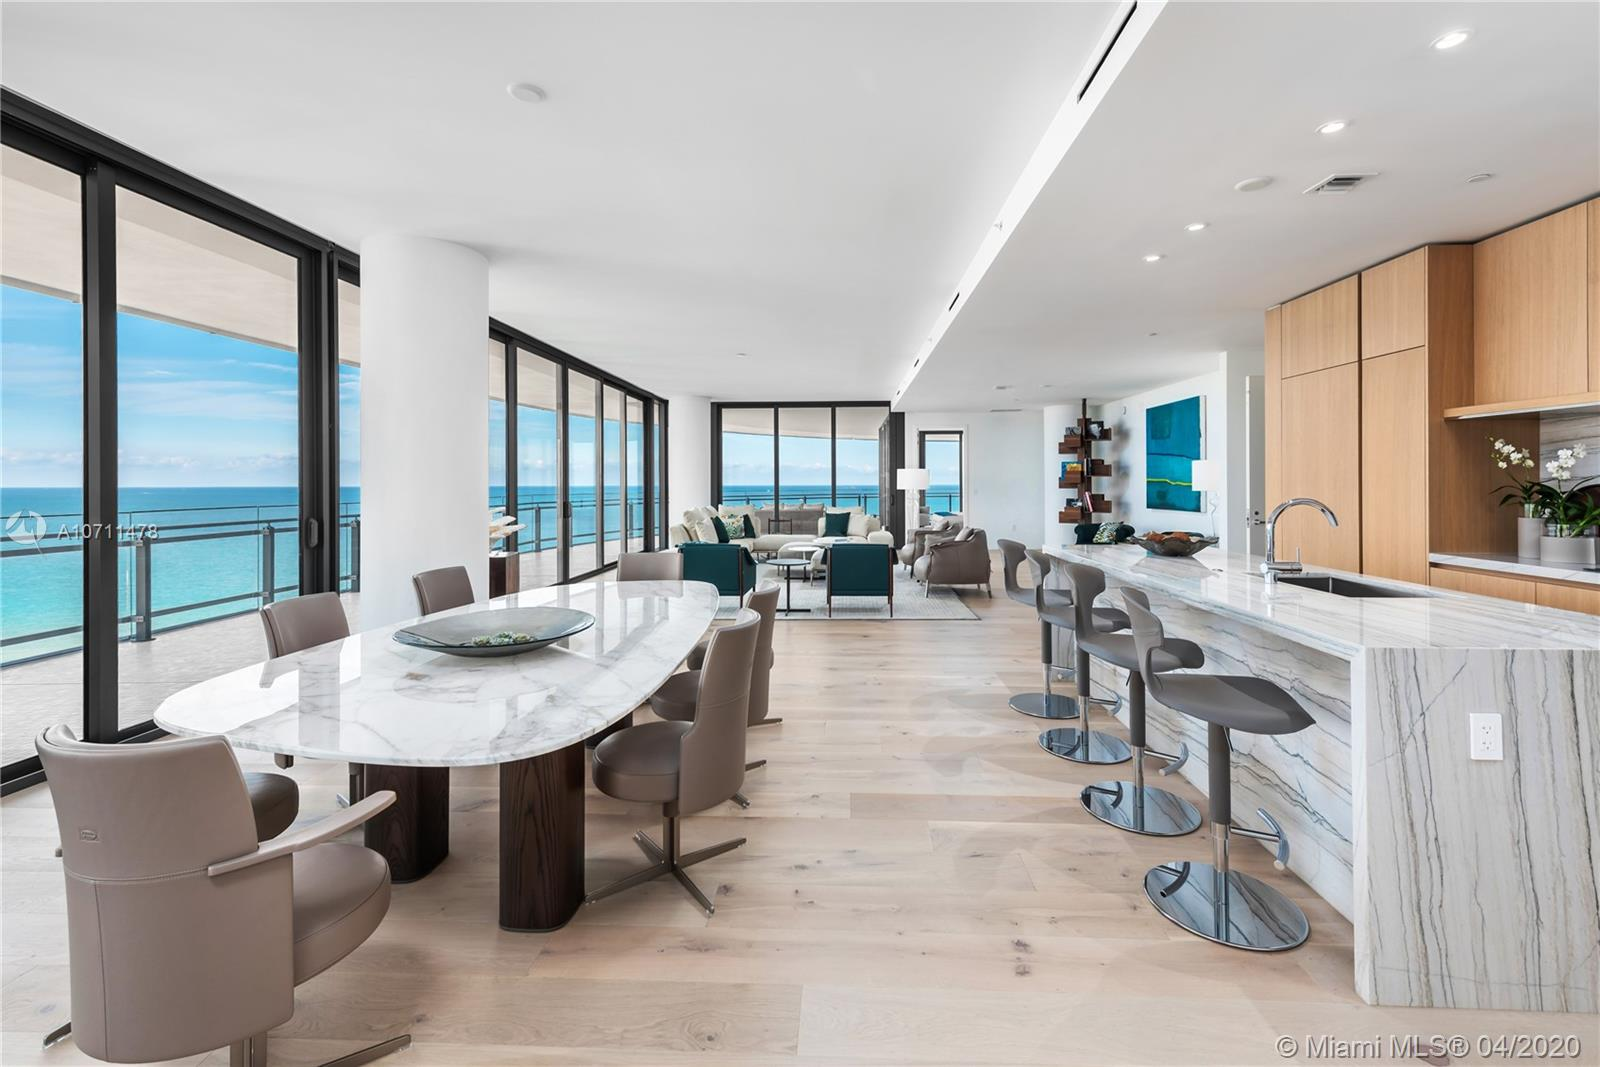 8701 Collins Avenue, 1501 - Miami Beach, Florida